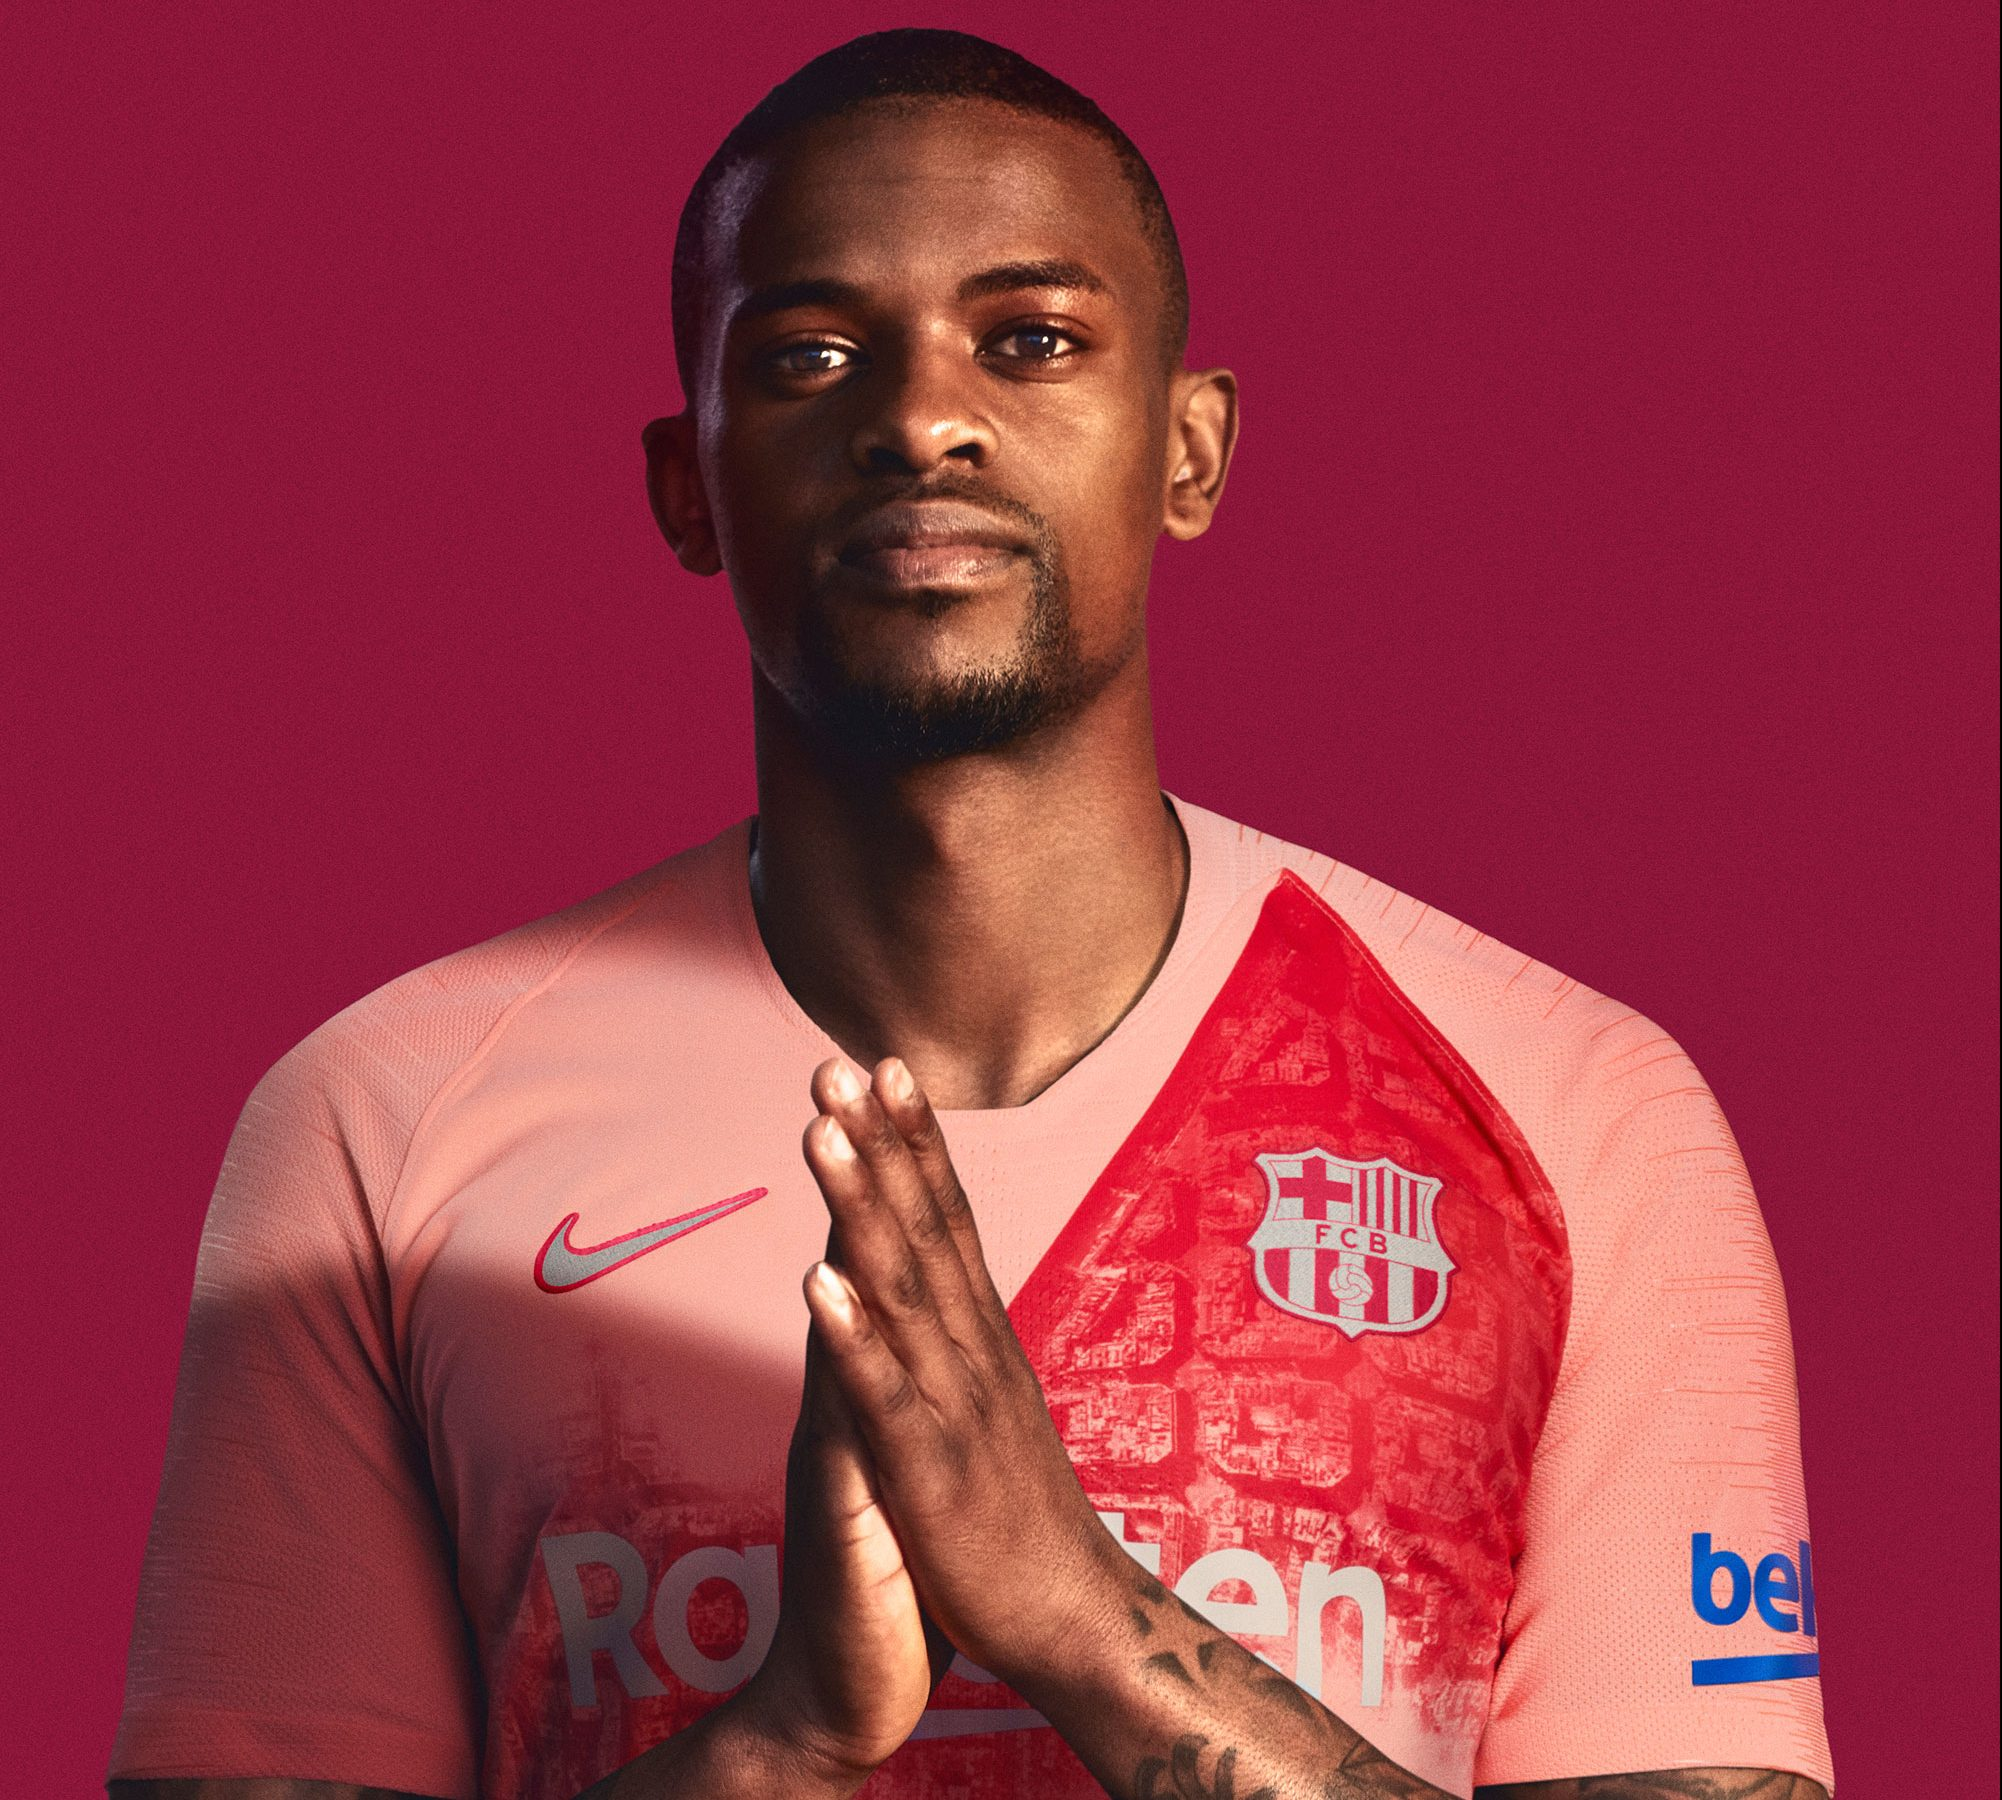 c14be0d32 Nike and Barcelona s 2018-19 Third Kit Gets Painted in Pale Pink